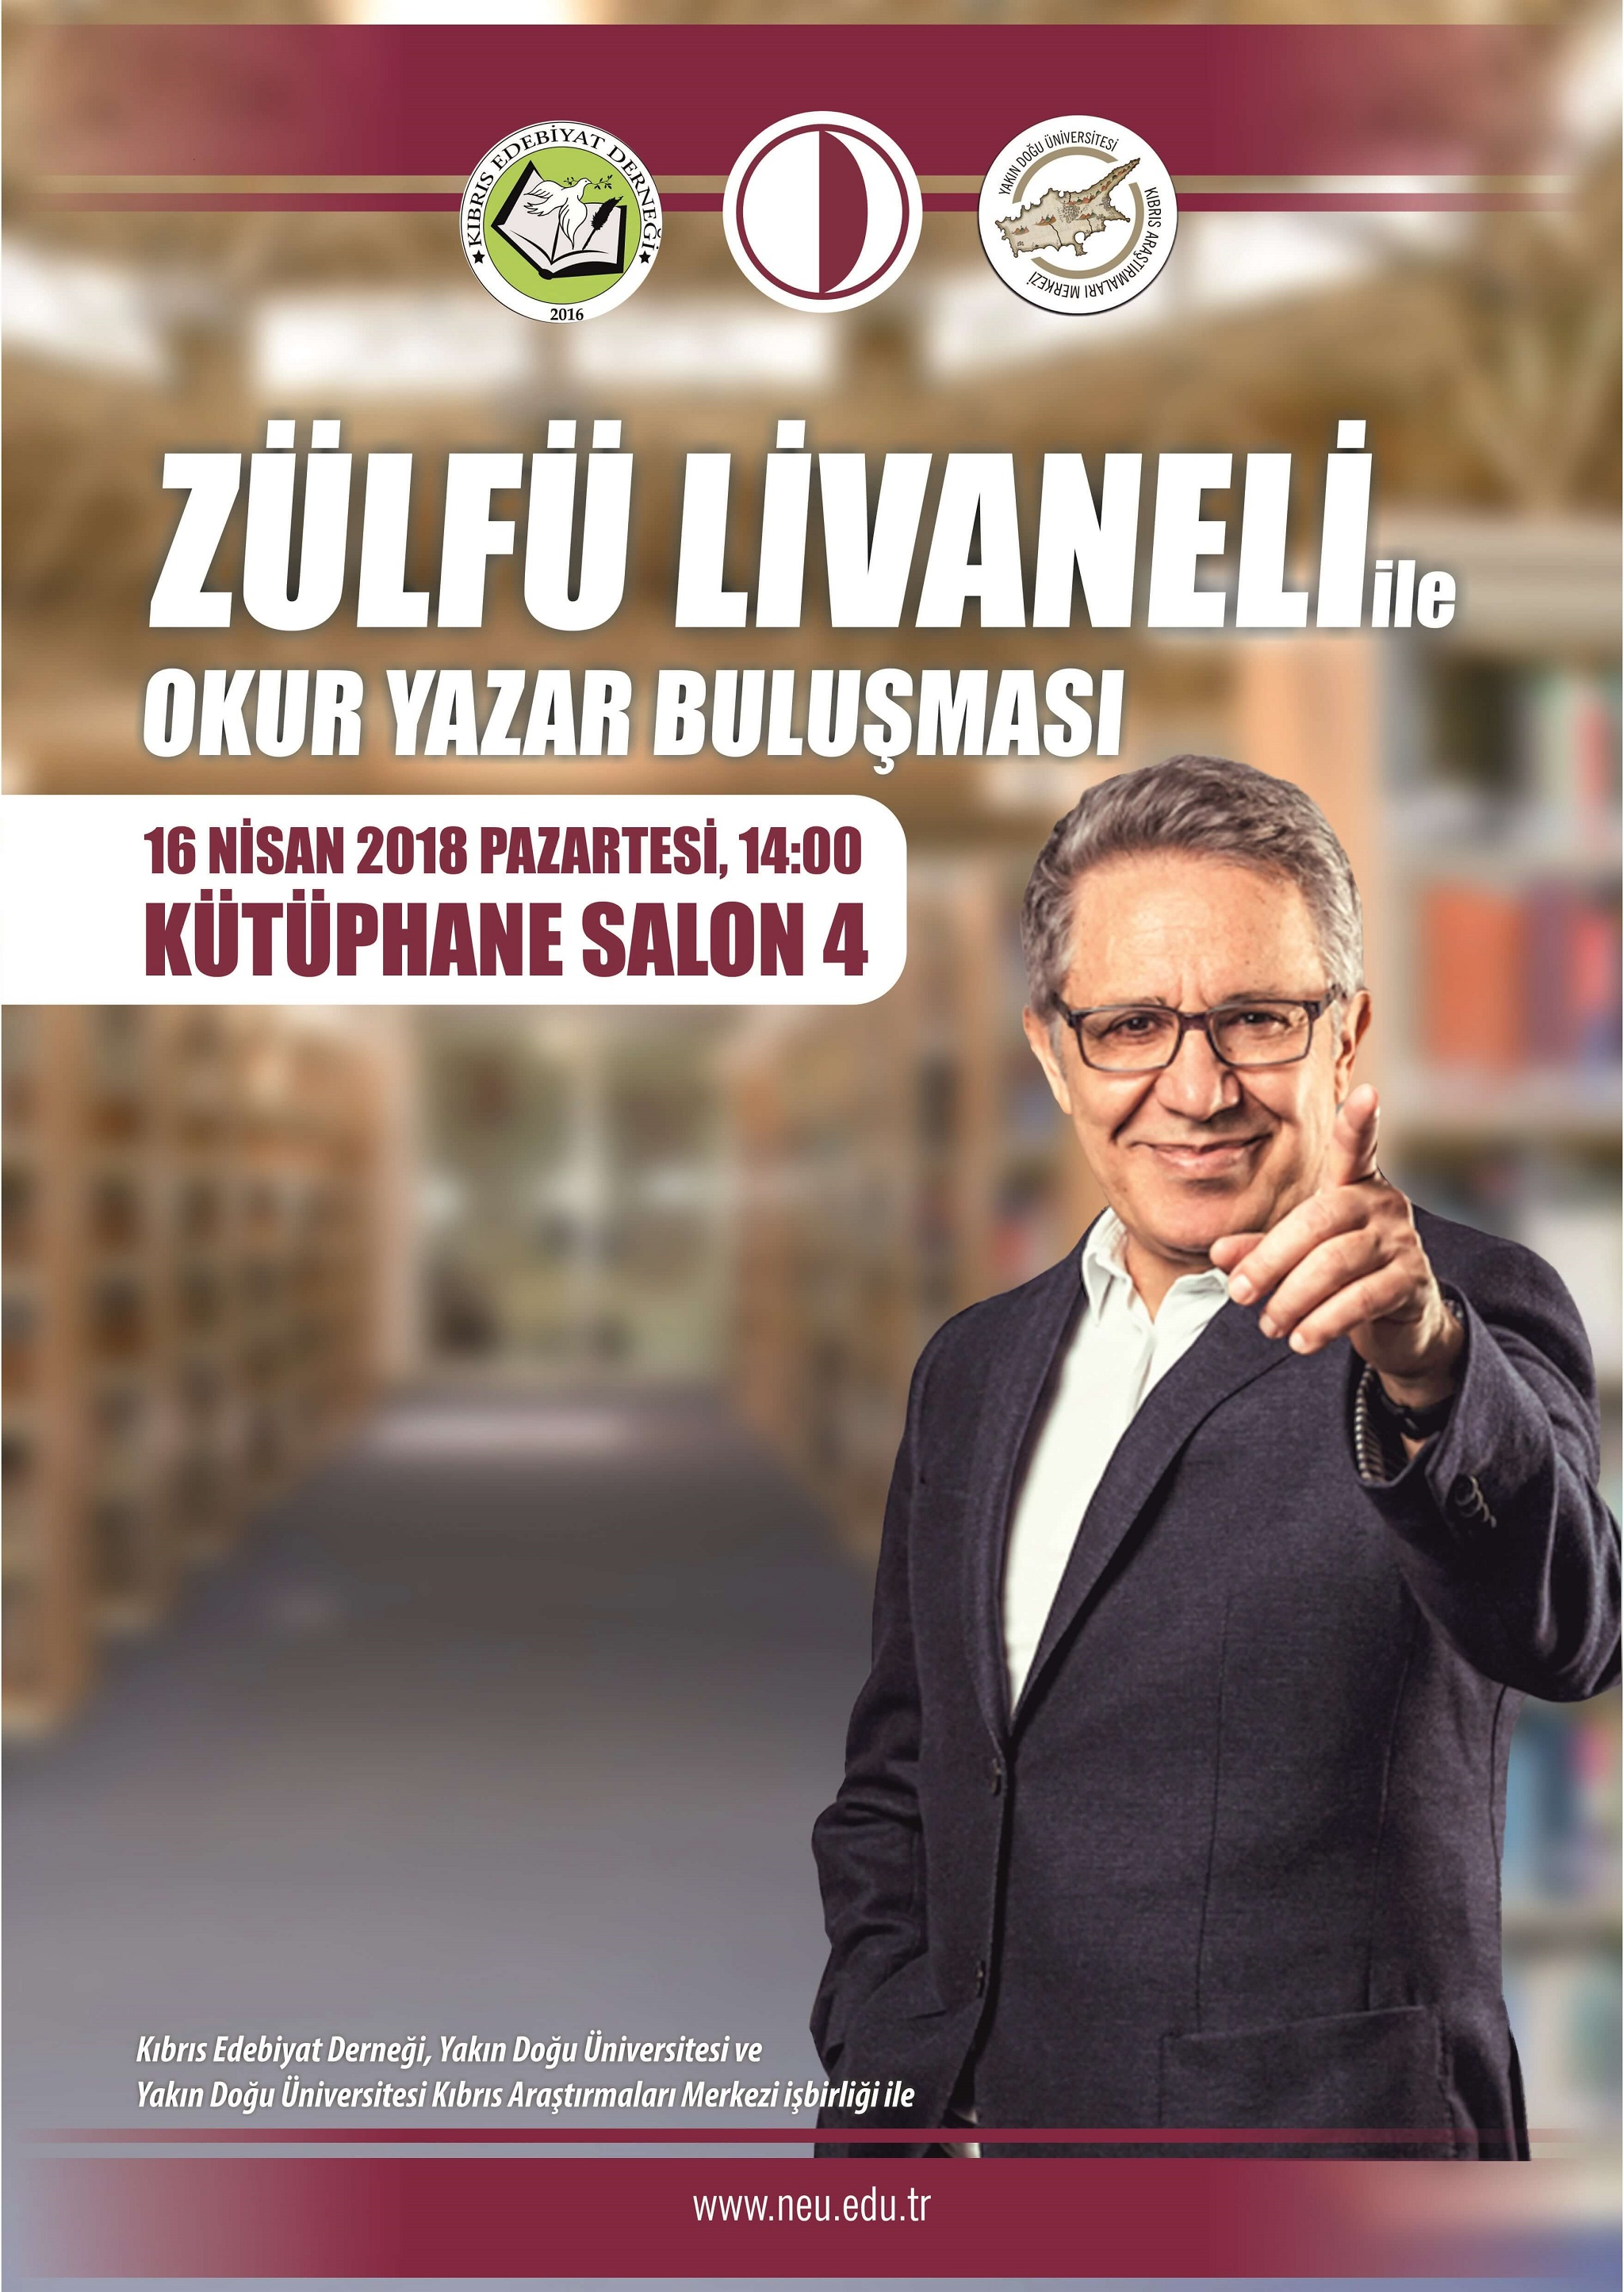 Zülfü Livaneli is getting together with readers on Near East University campus